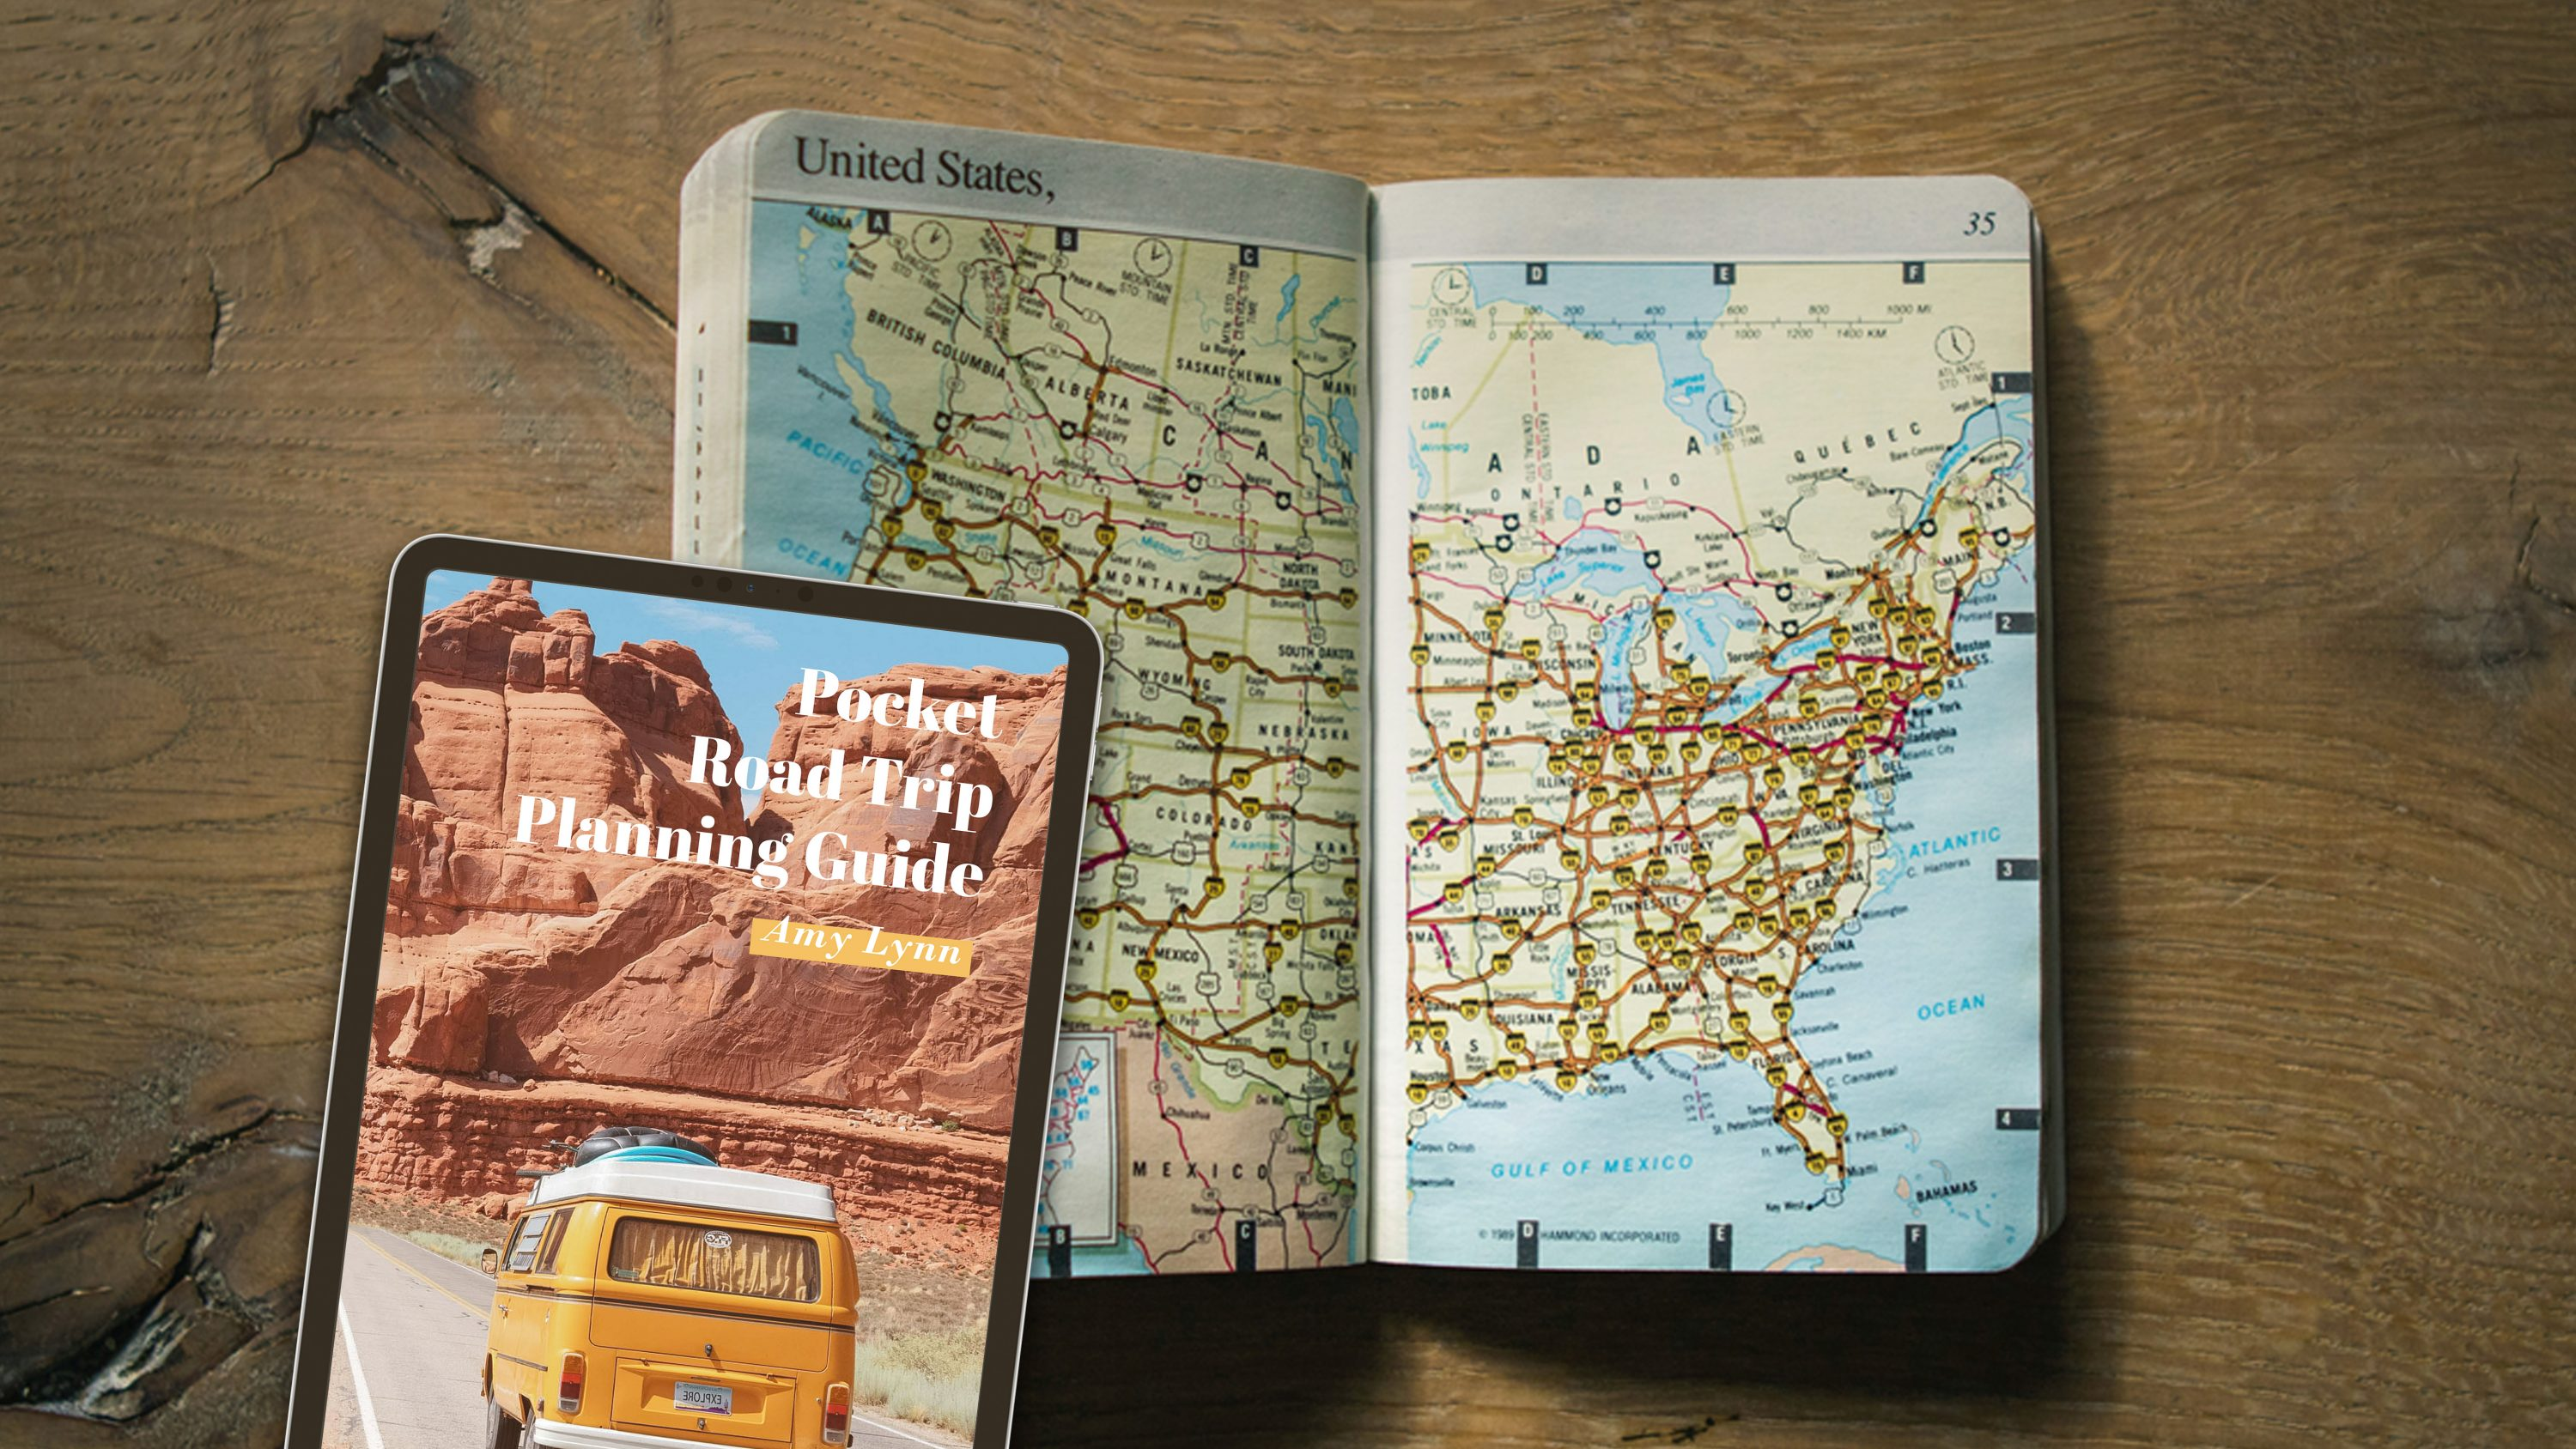 pocket-road-trip-planning-guide-landing-page